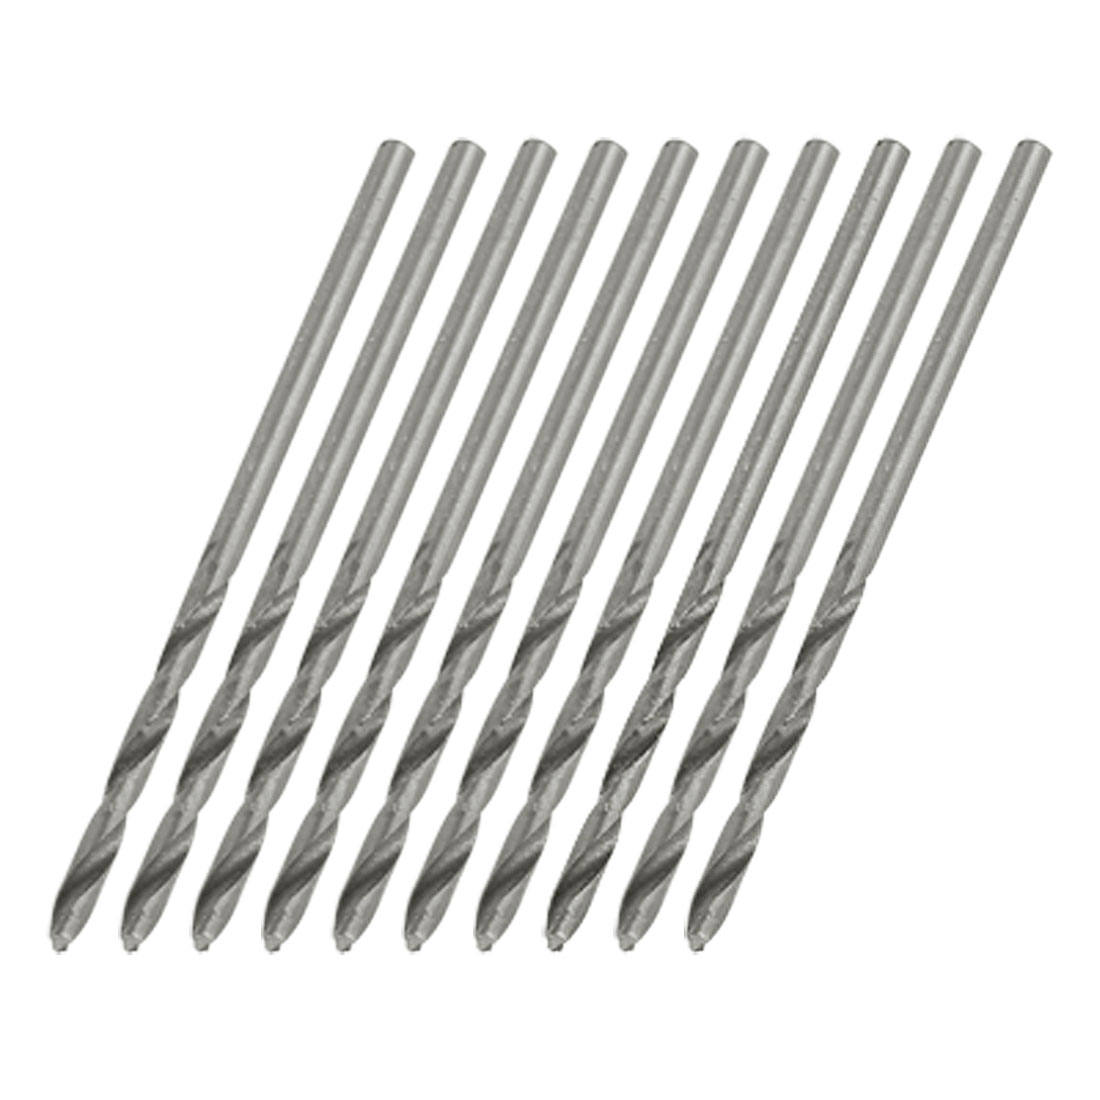 10 x Helix Flute Straight Shank 2.1mm Dia Twist Drill Bits